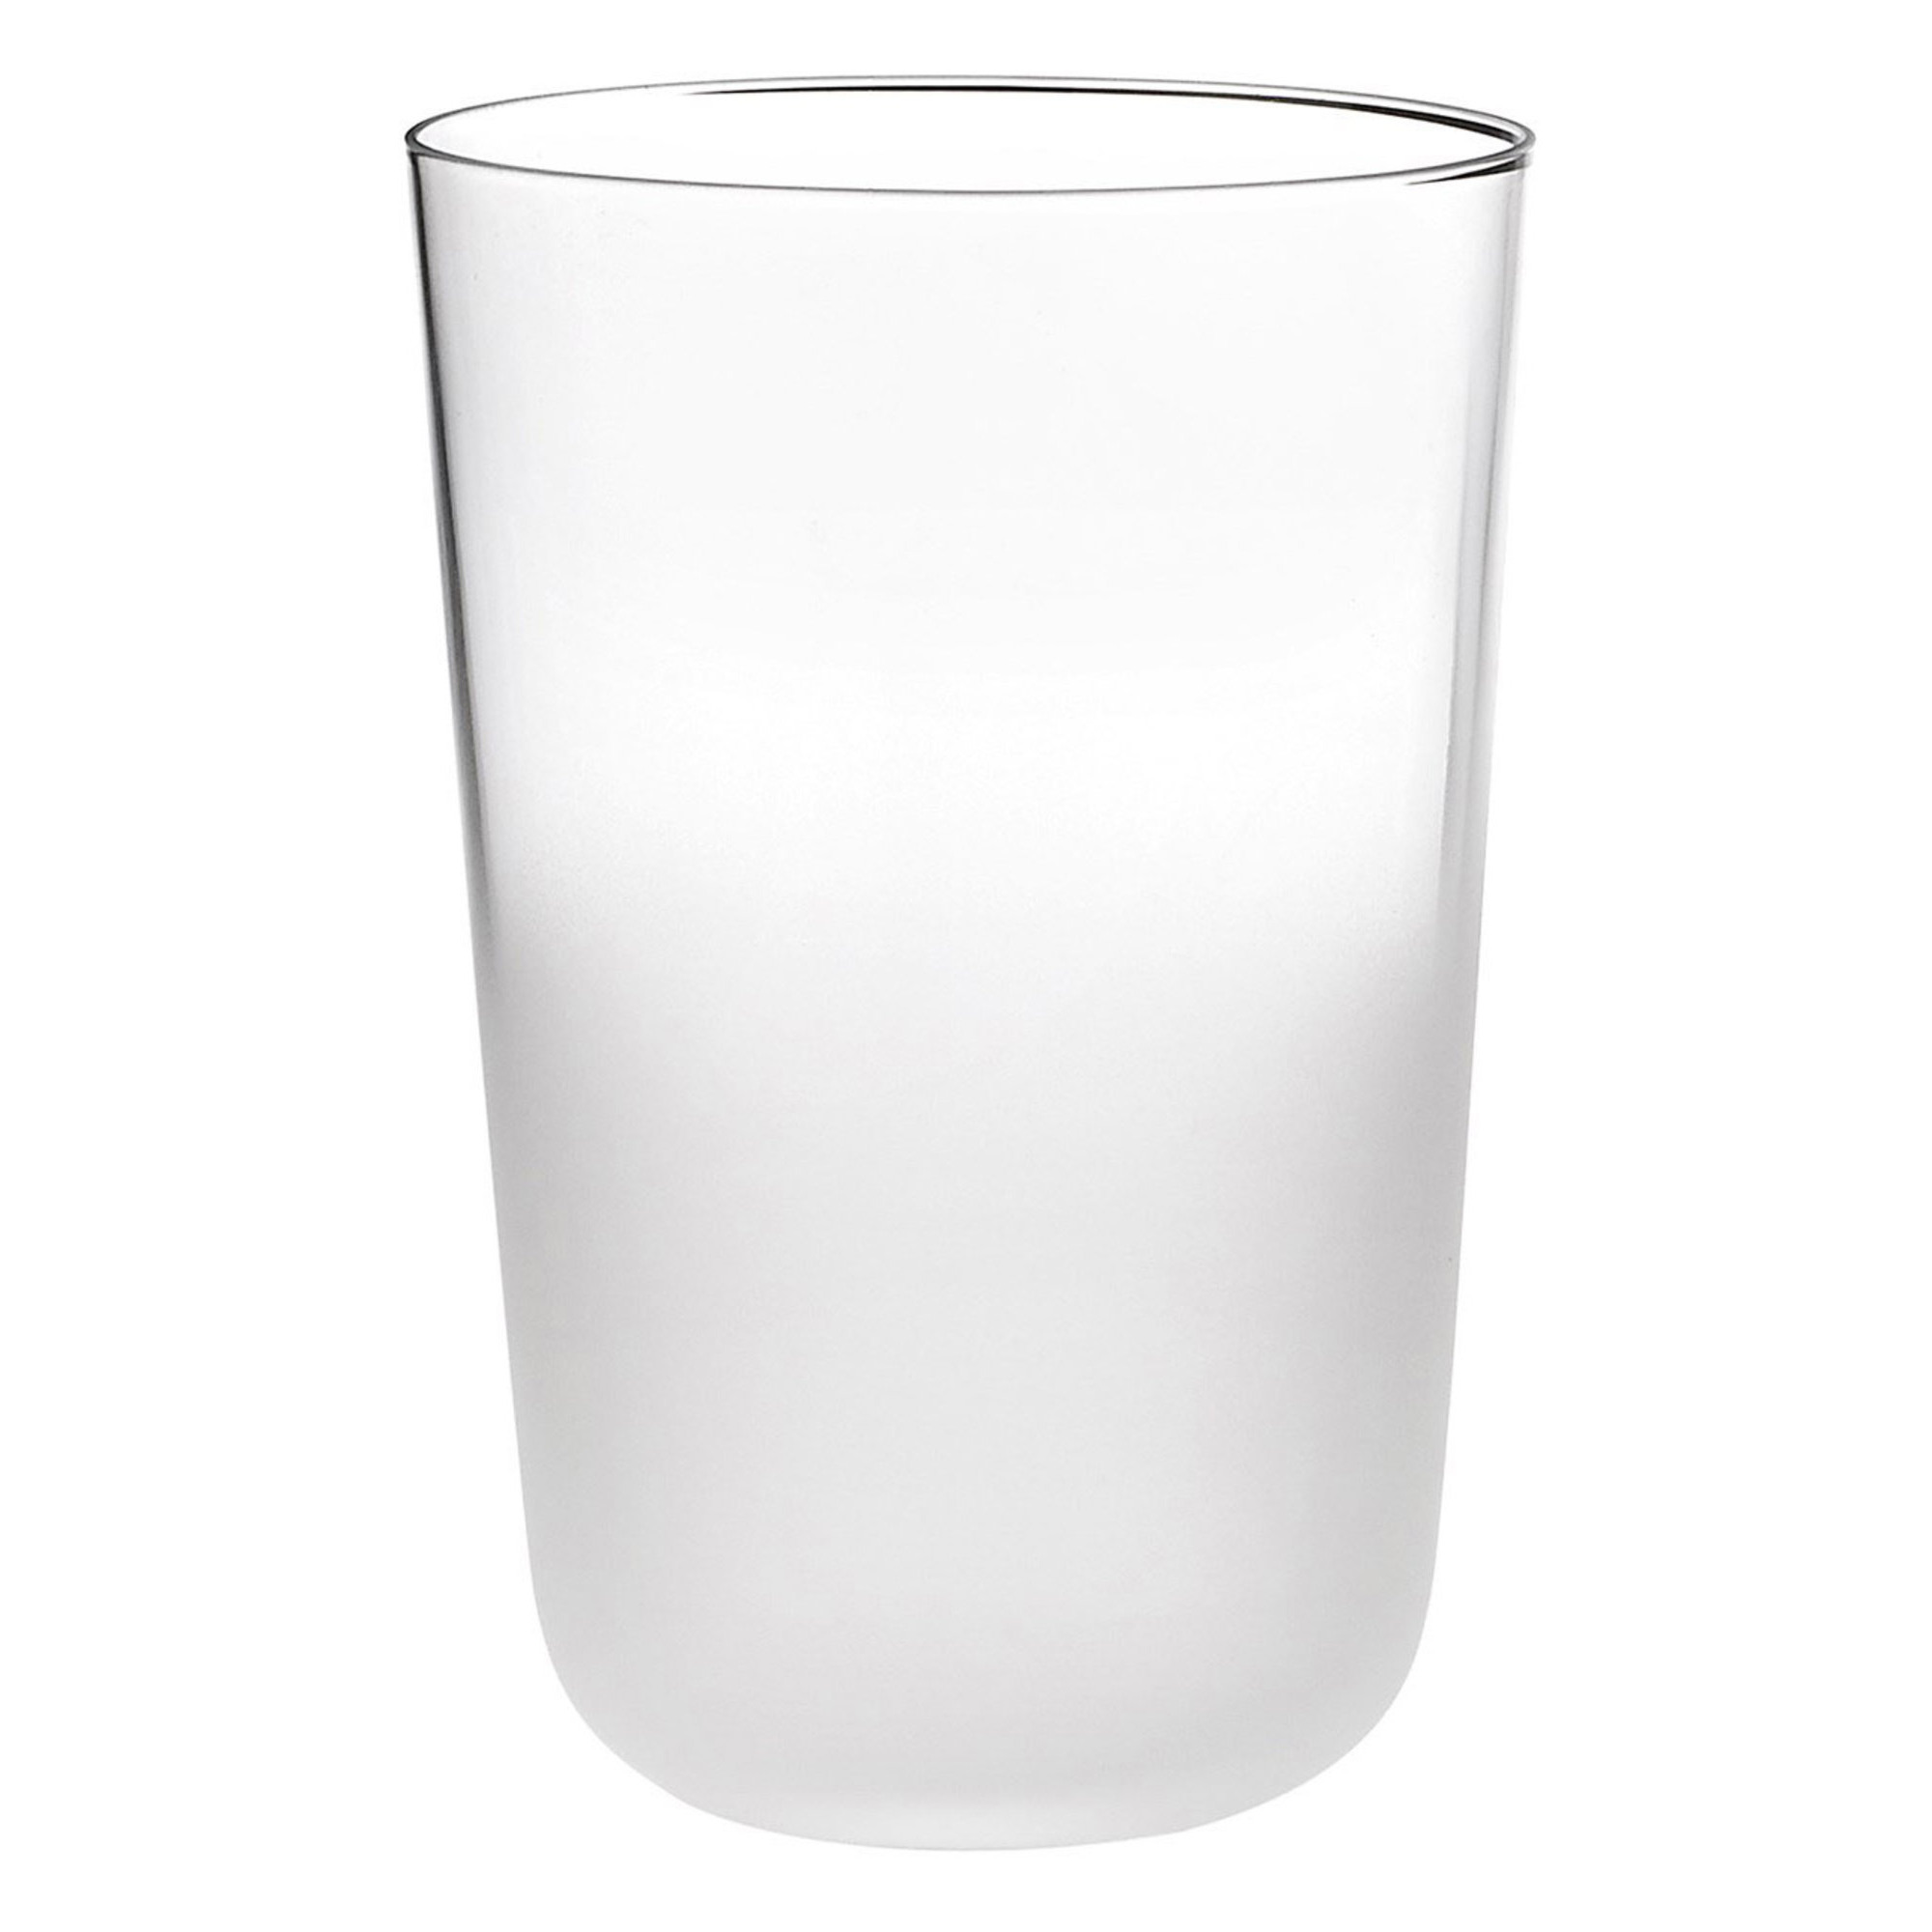 Stelton Frost glas no.1 2-pack